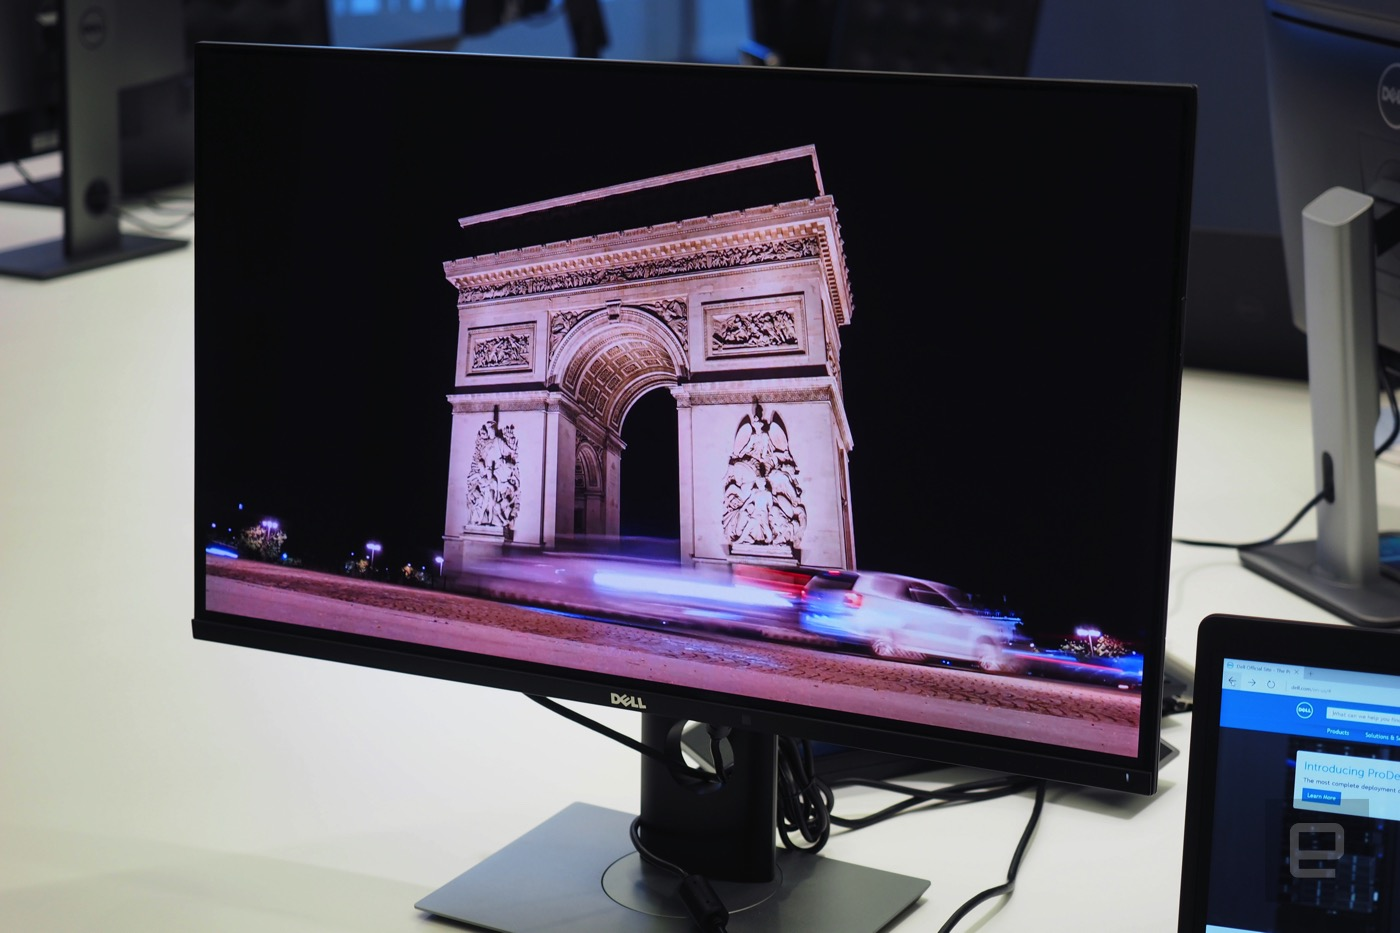 dell 39 s 4k oled monitor outshines its new pcs. Black Bedroom Furniture Sets. Home Design Ideas